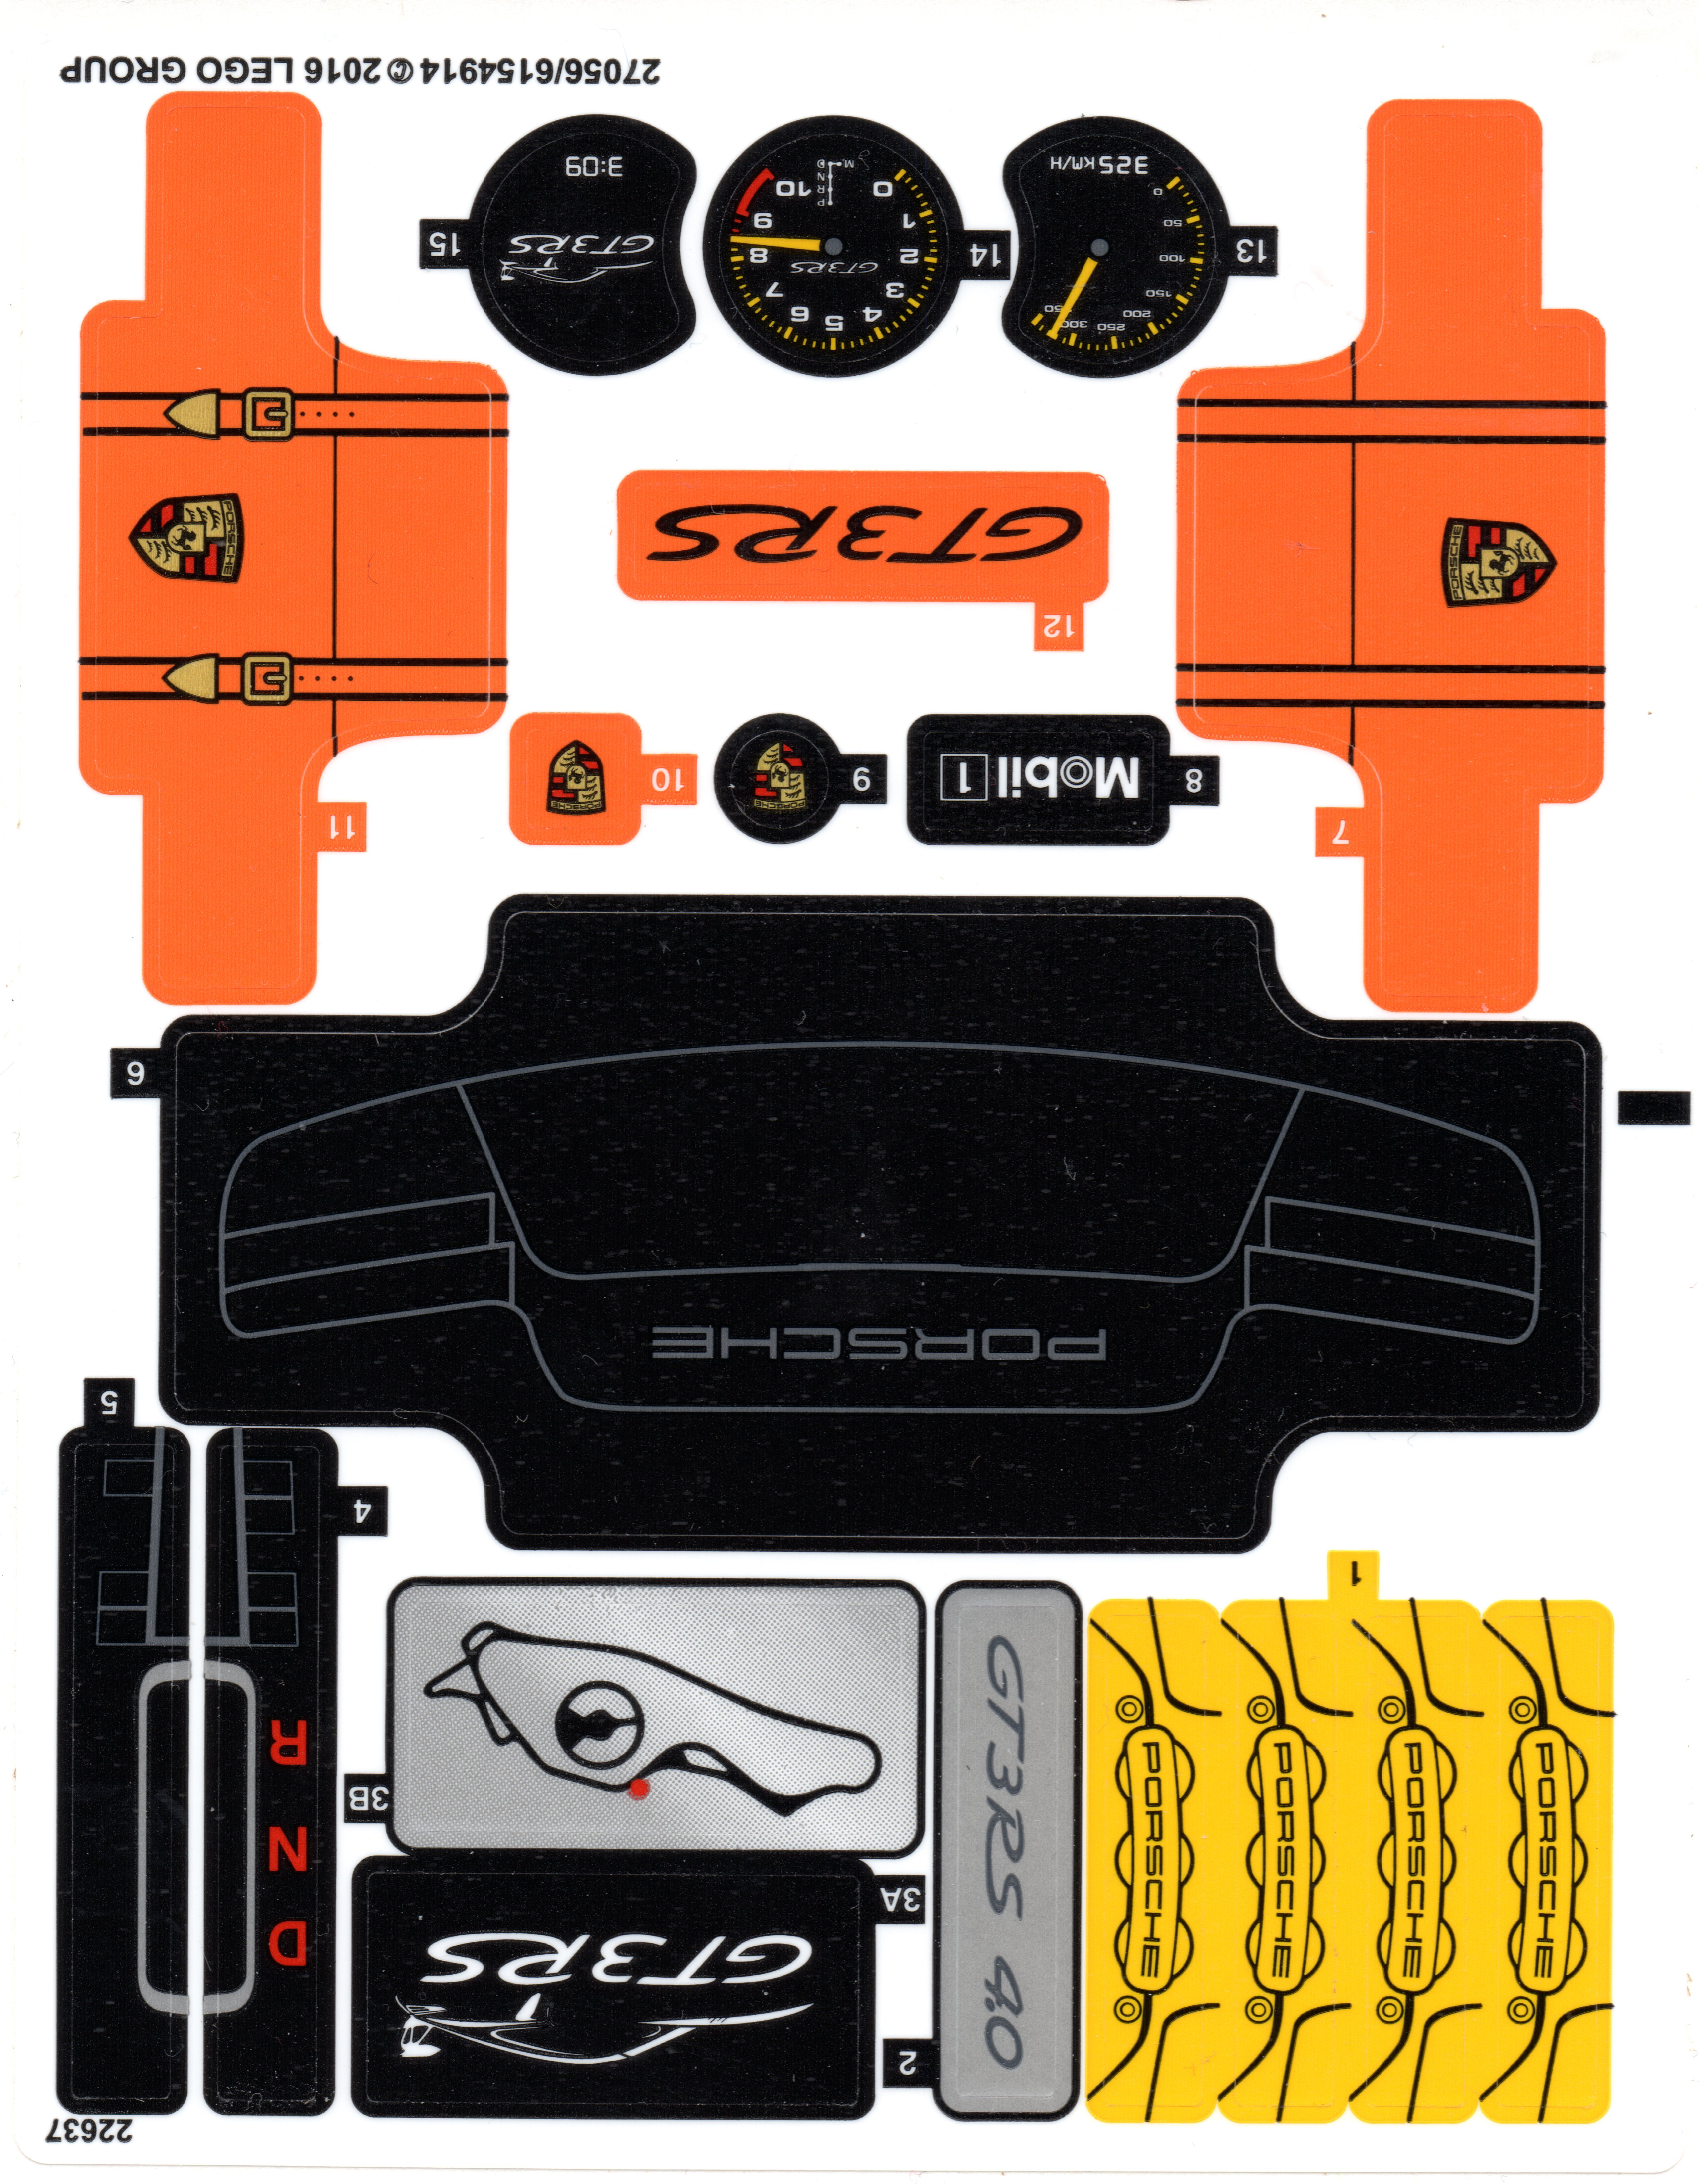 I Am Searching For The Parts Dat From The Porsche Gt3 Rs